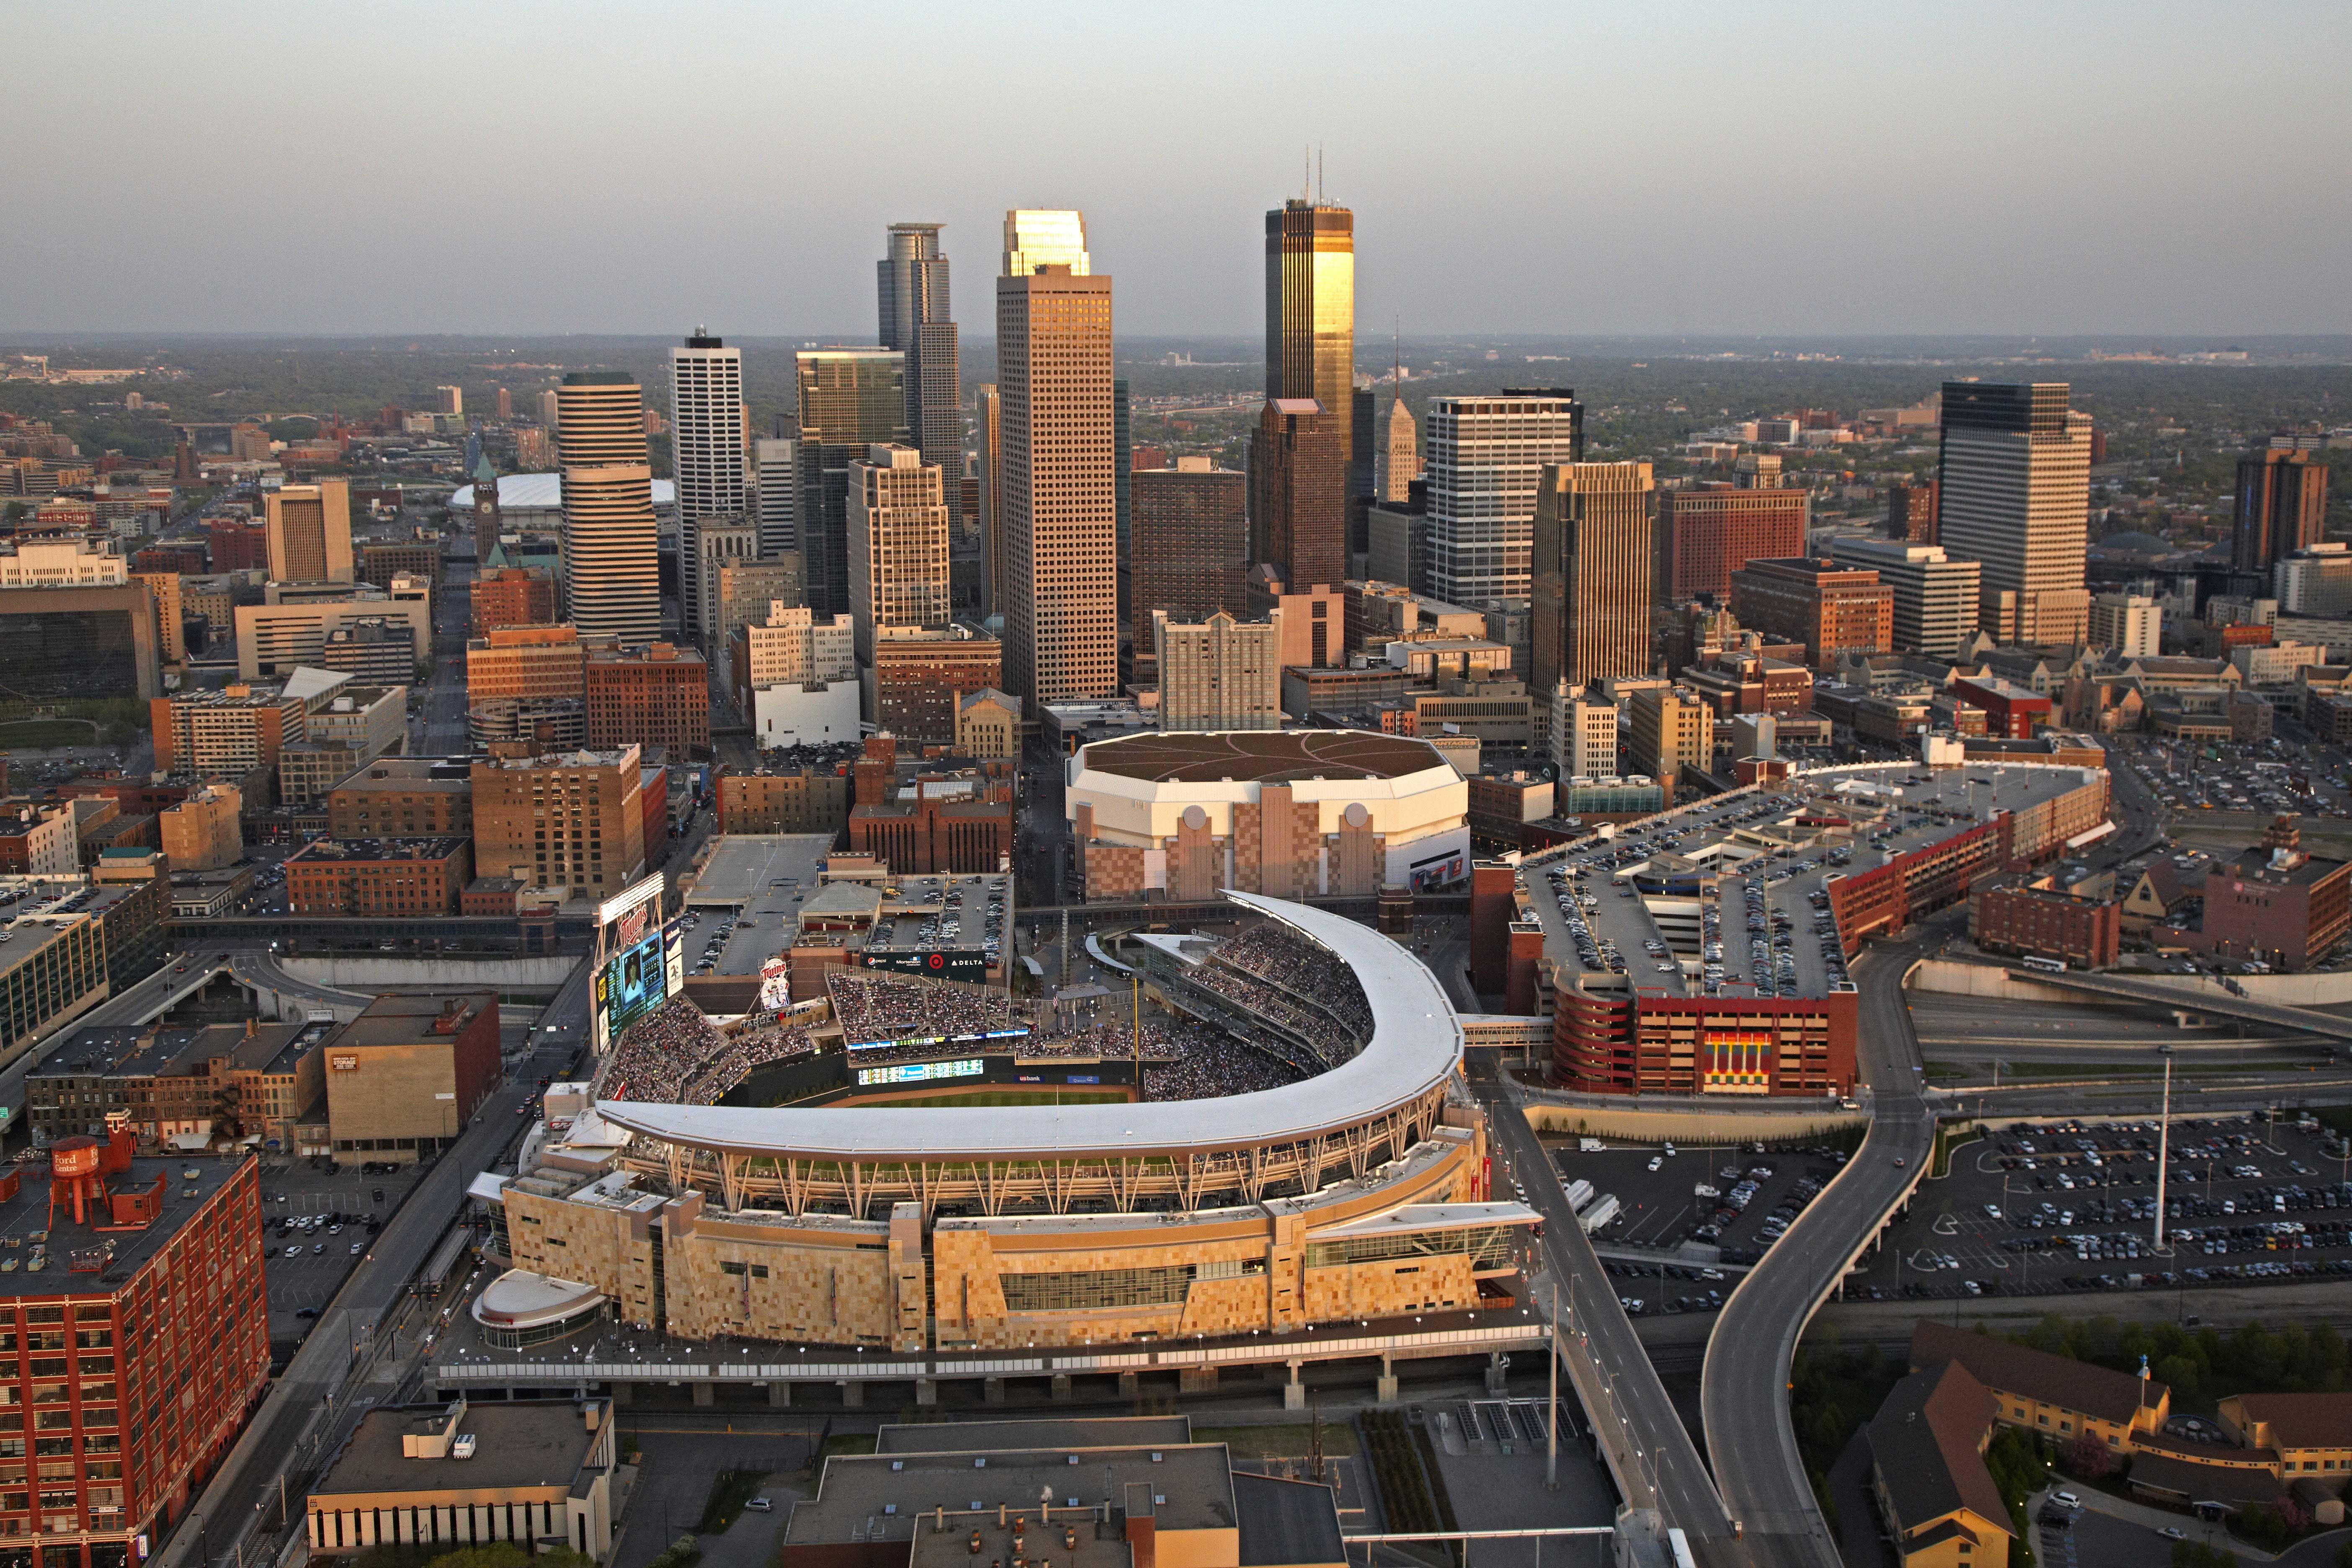 Target Field, home of the Minnesota Twins in Minneapolis ...